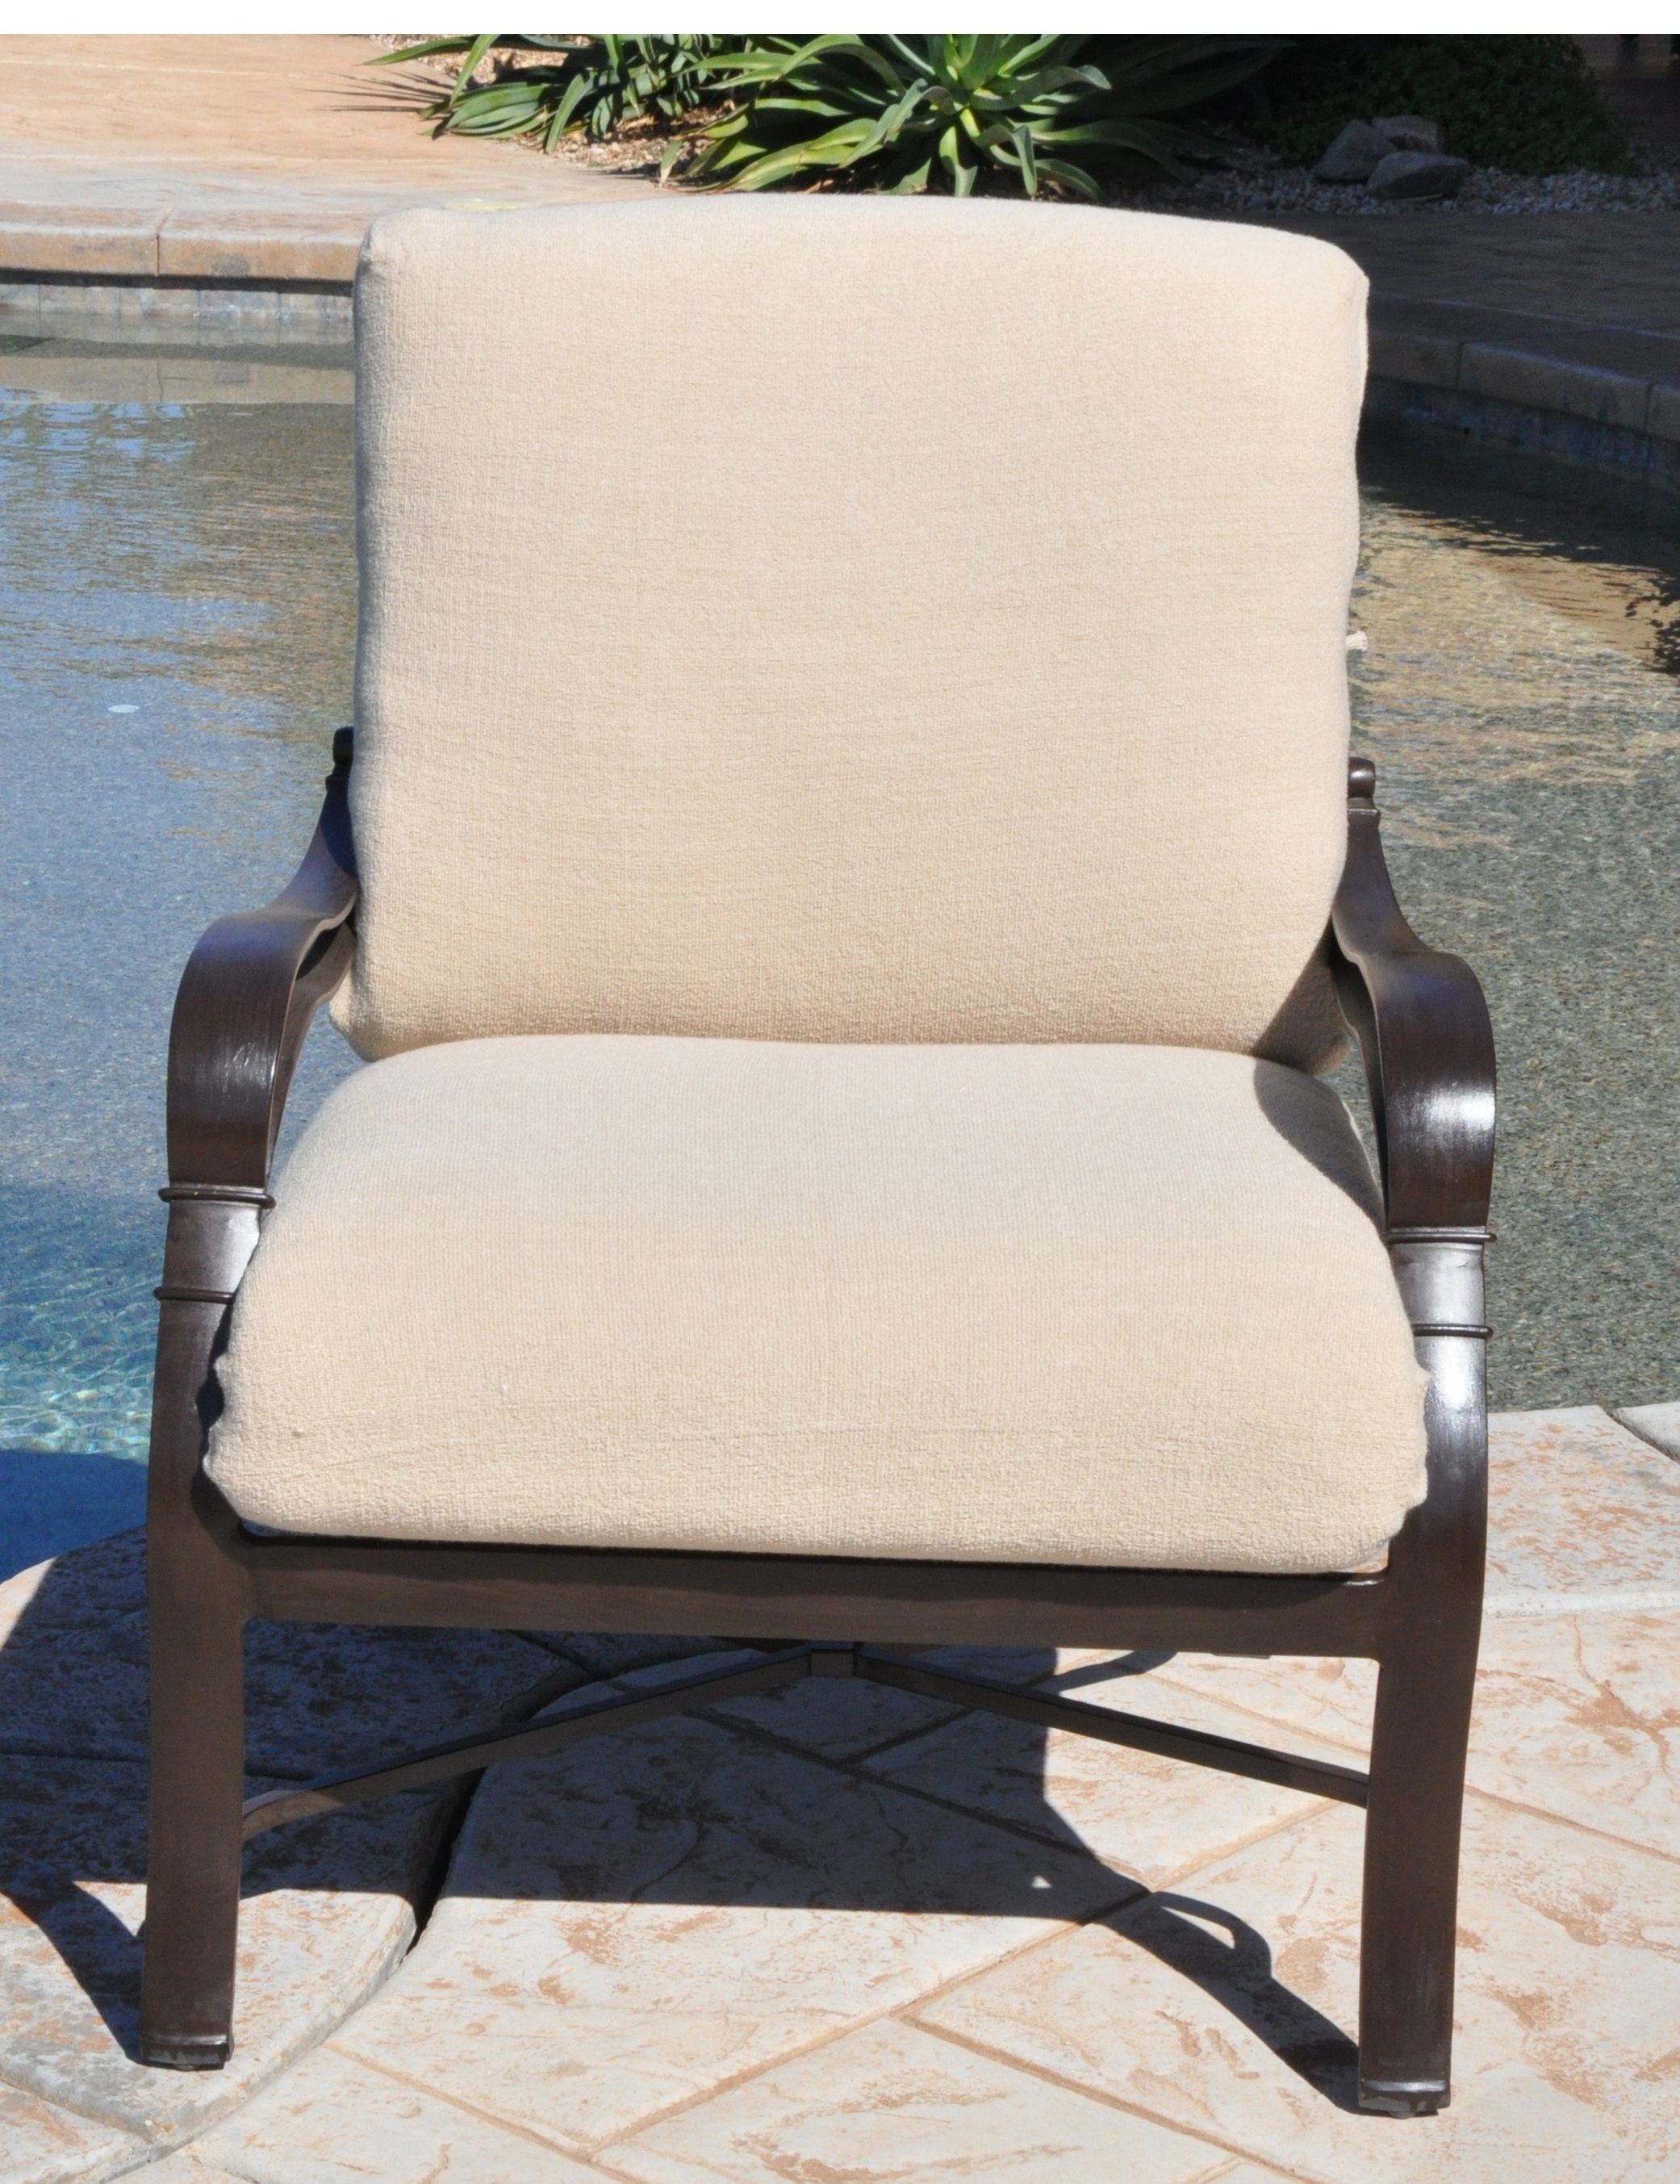 Slipcovers For Outdoor Furniture